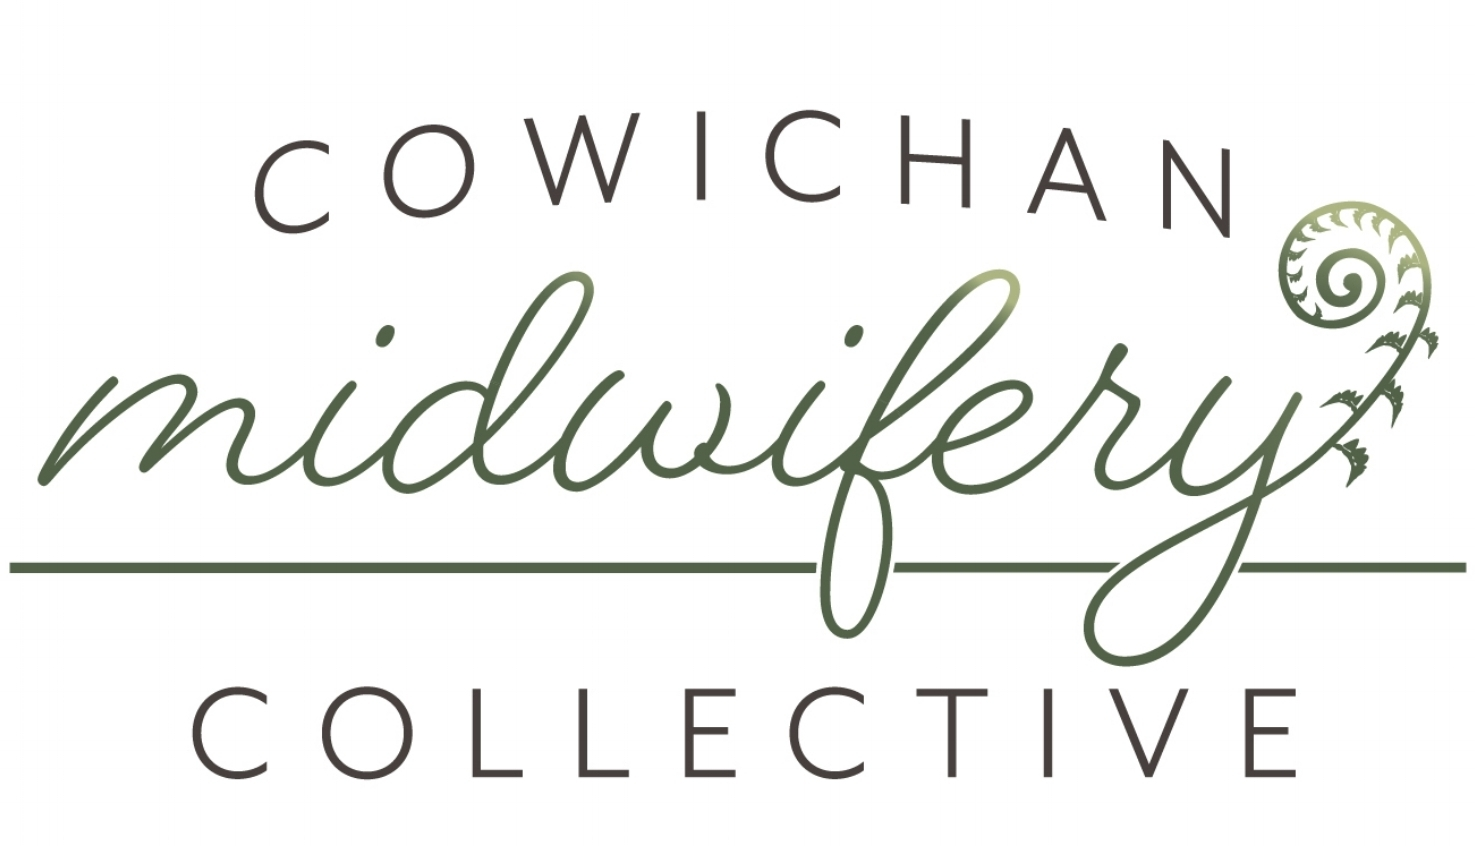 Cowichan Midwifery Collective